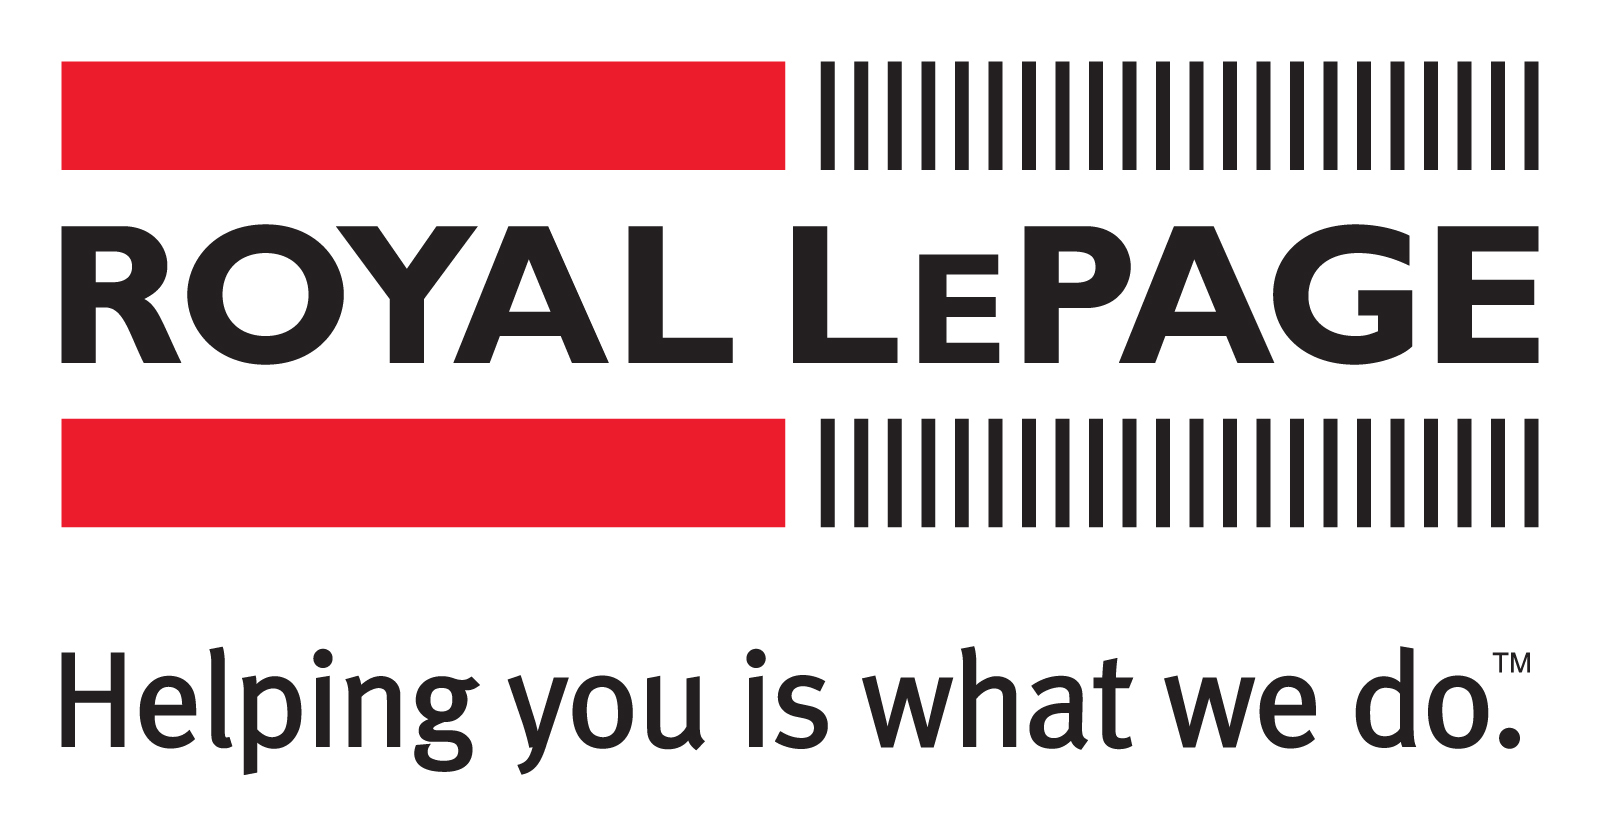 royal lepage logo tagline below english large.jpg